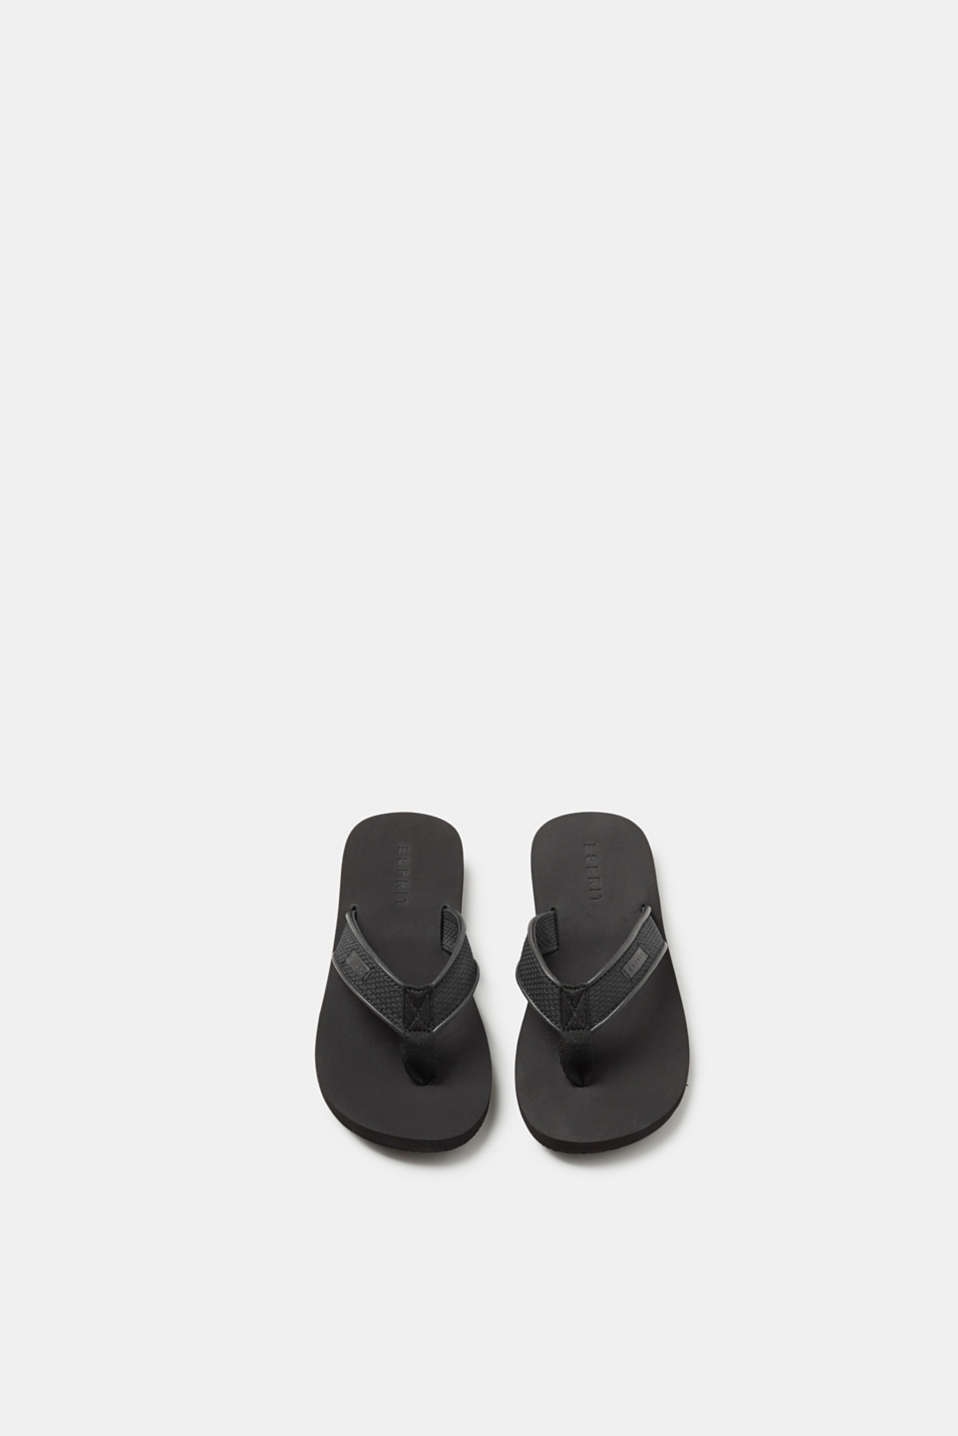 Toe-post sandals with wide, textured straps